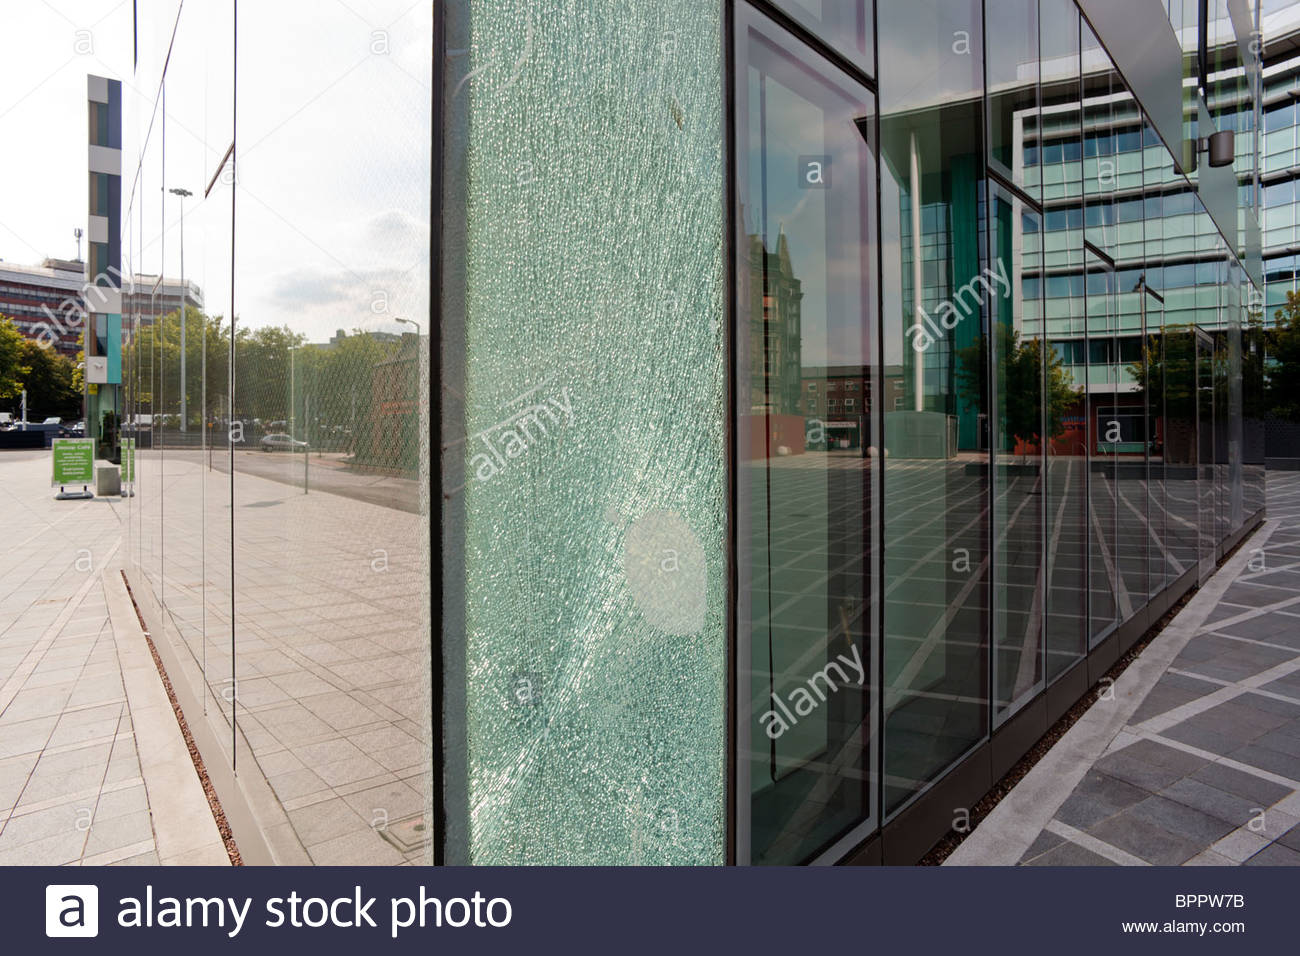 Shattered Pane Glass Stockfotos & Shattered Pane Glass Bilder Alamy